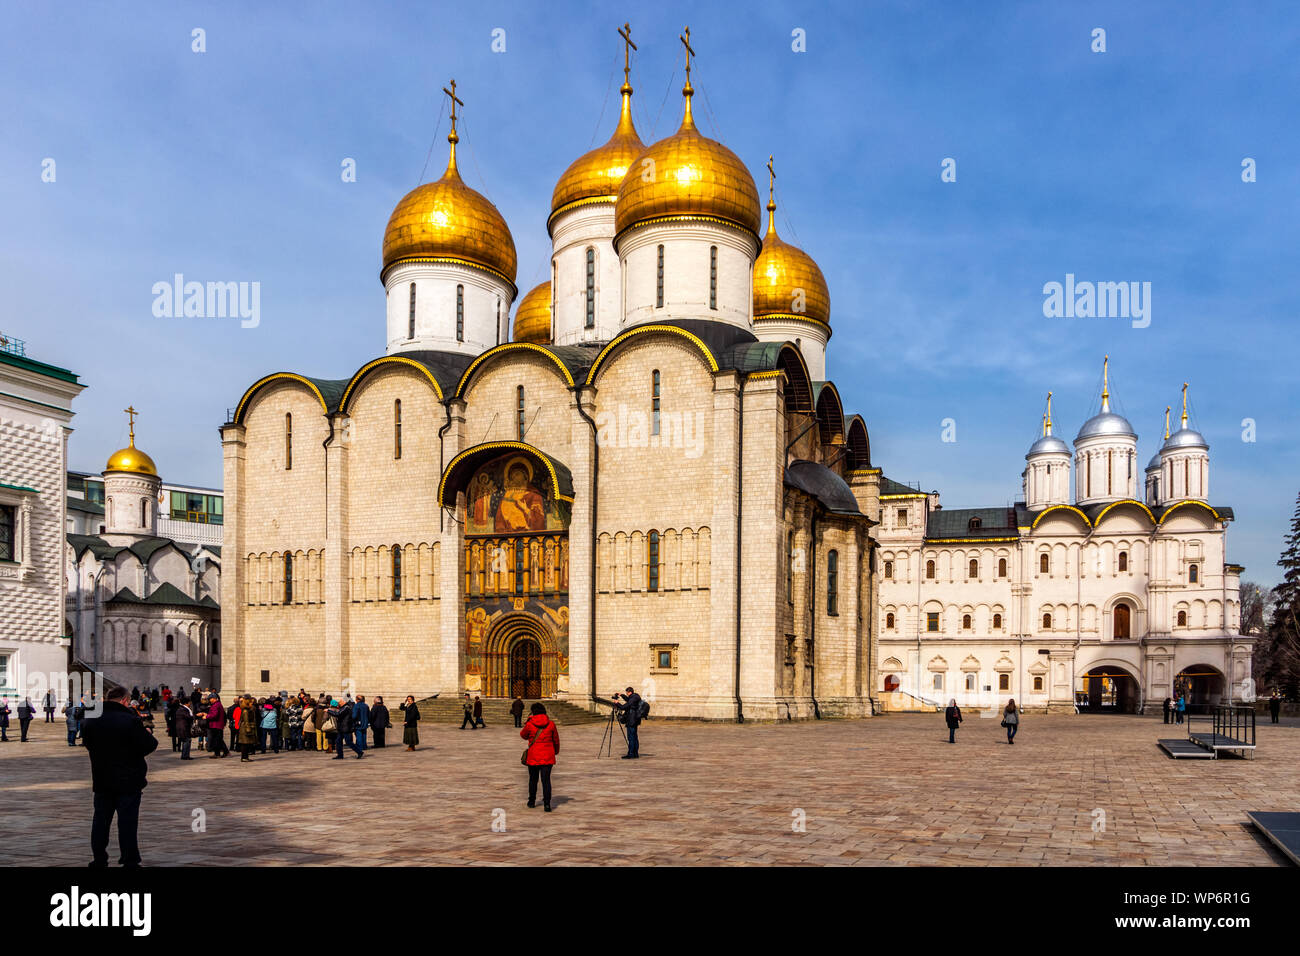 Moscow, Russia, April 2013 Tourists visiting and photographing Cathedral of the Dormition also known as Cathedral of the Assumption in Kremlin Stock Photo